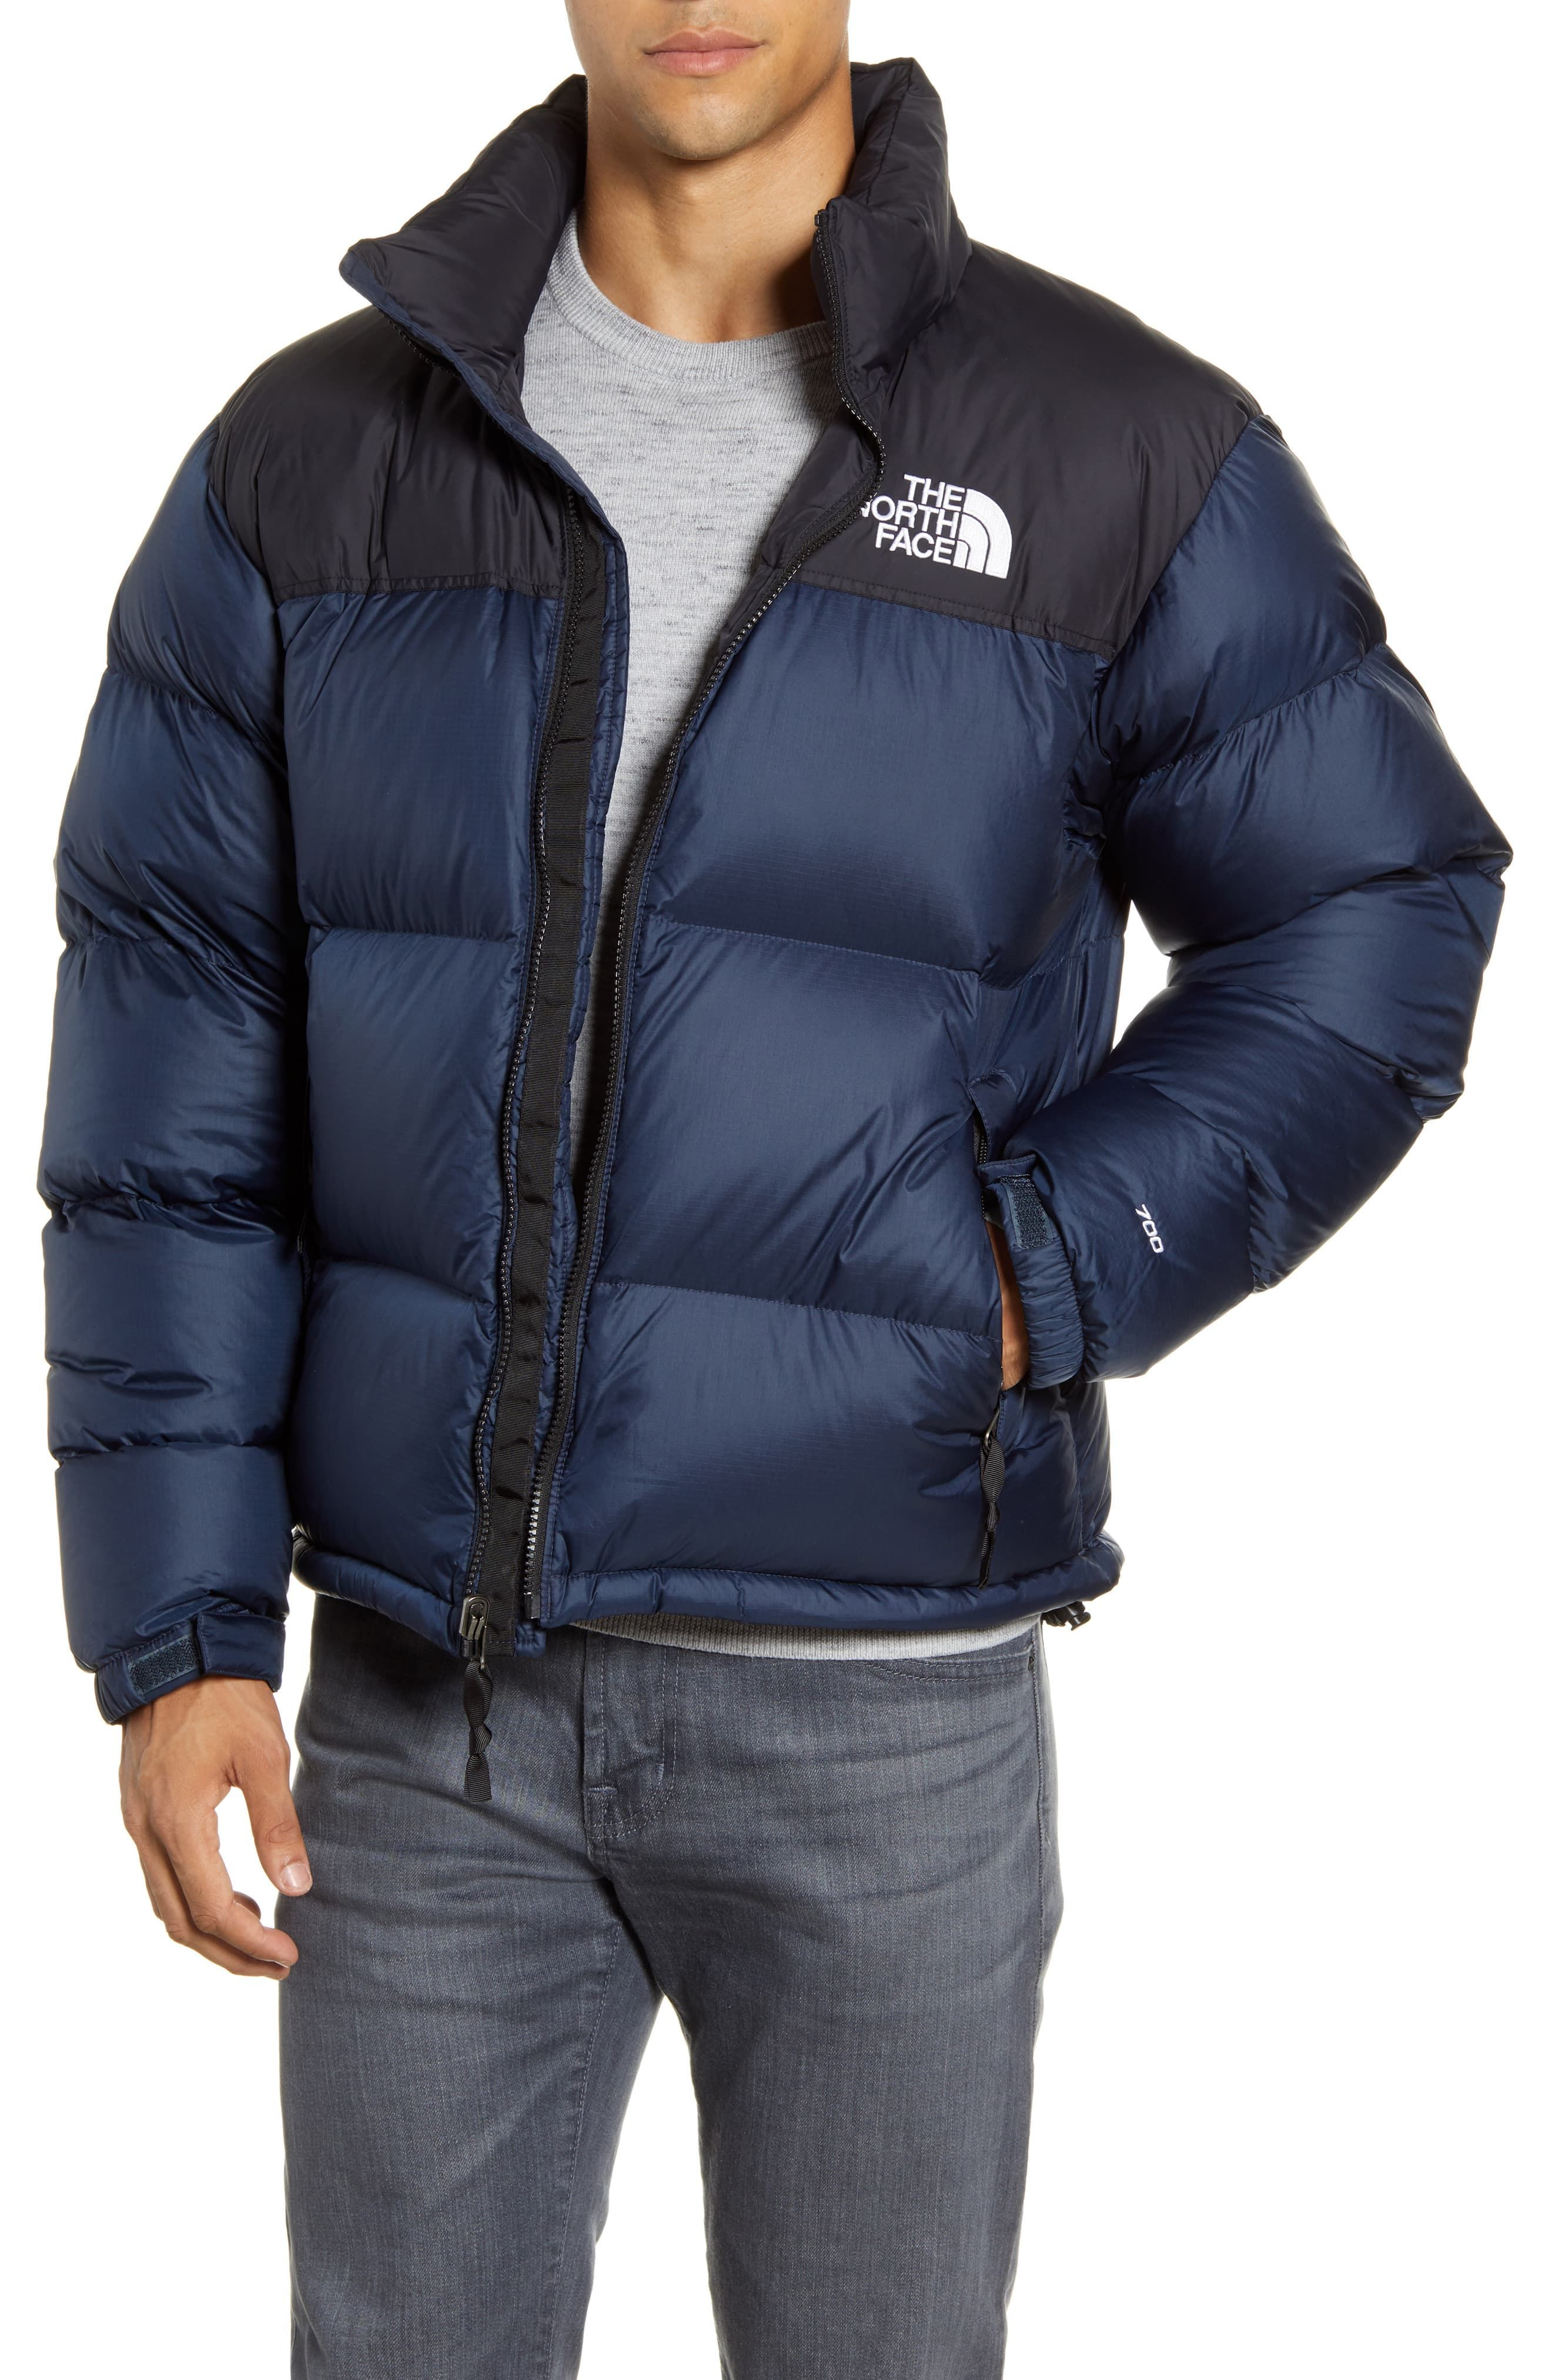 The North Face Nuptse 1996 Packable Quilted Down Jacket Nordstrom In 2021 North Face Nuptse North Face Puffer Jacket North Face Puffer Jacket Men [ 4048 x 2640 Pixel ]